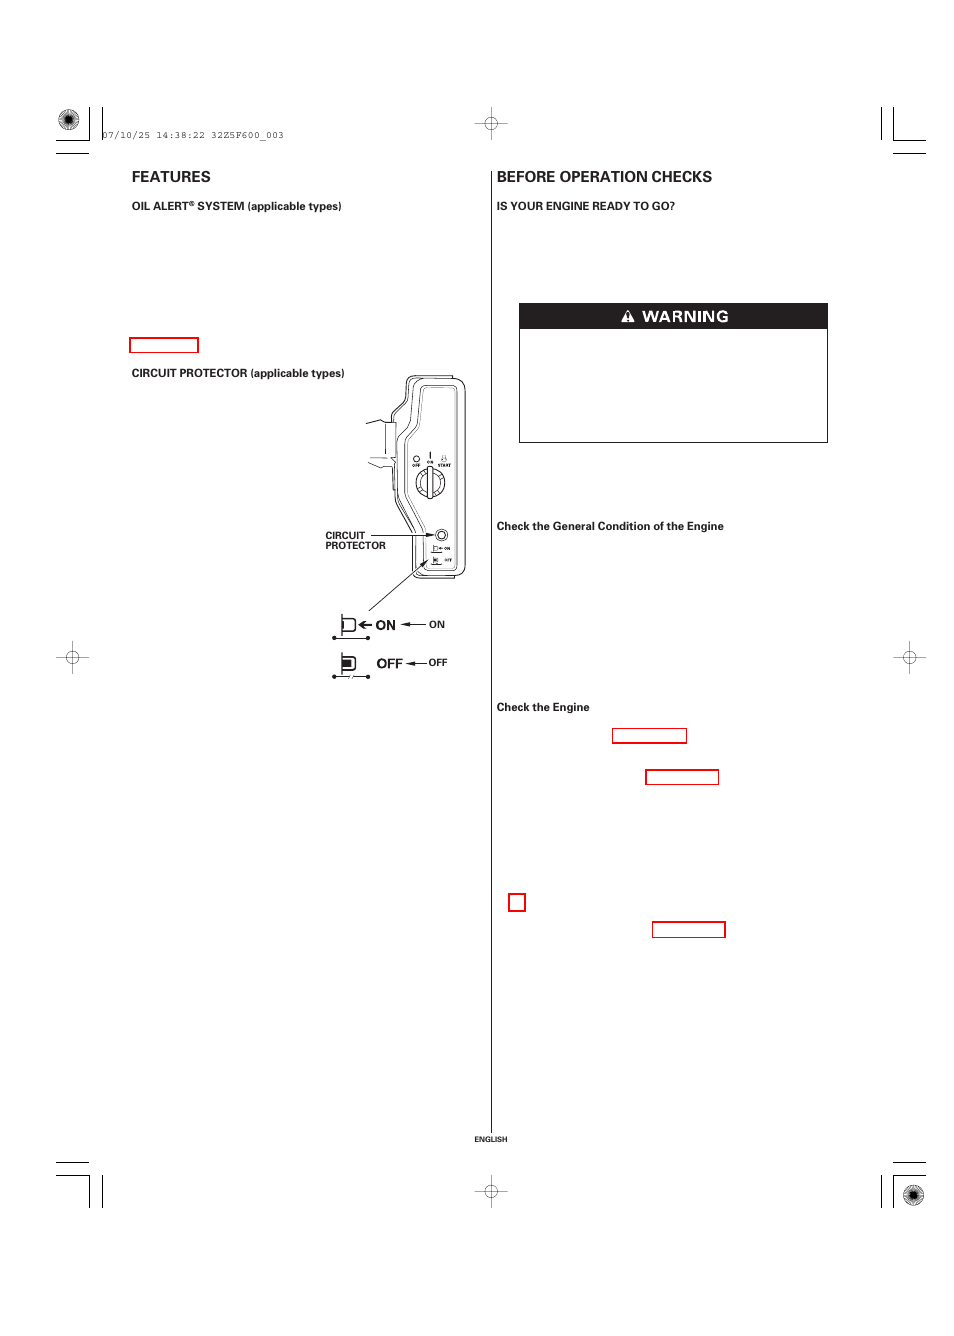 Features, Oil alert® system (applicable types), Circuit protector  (applicable types